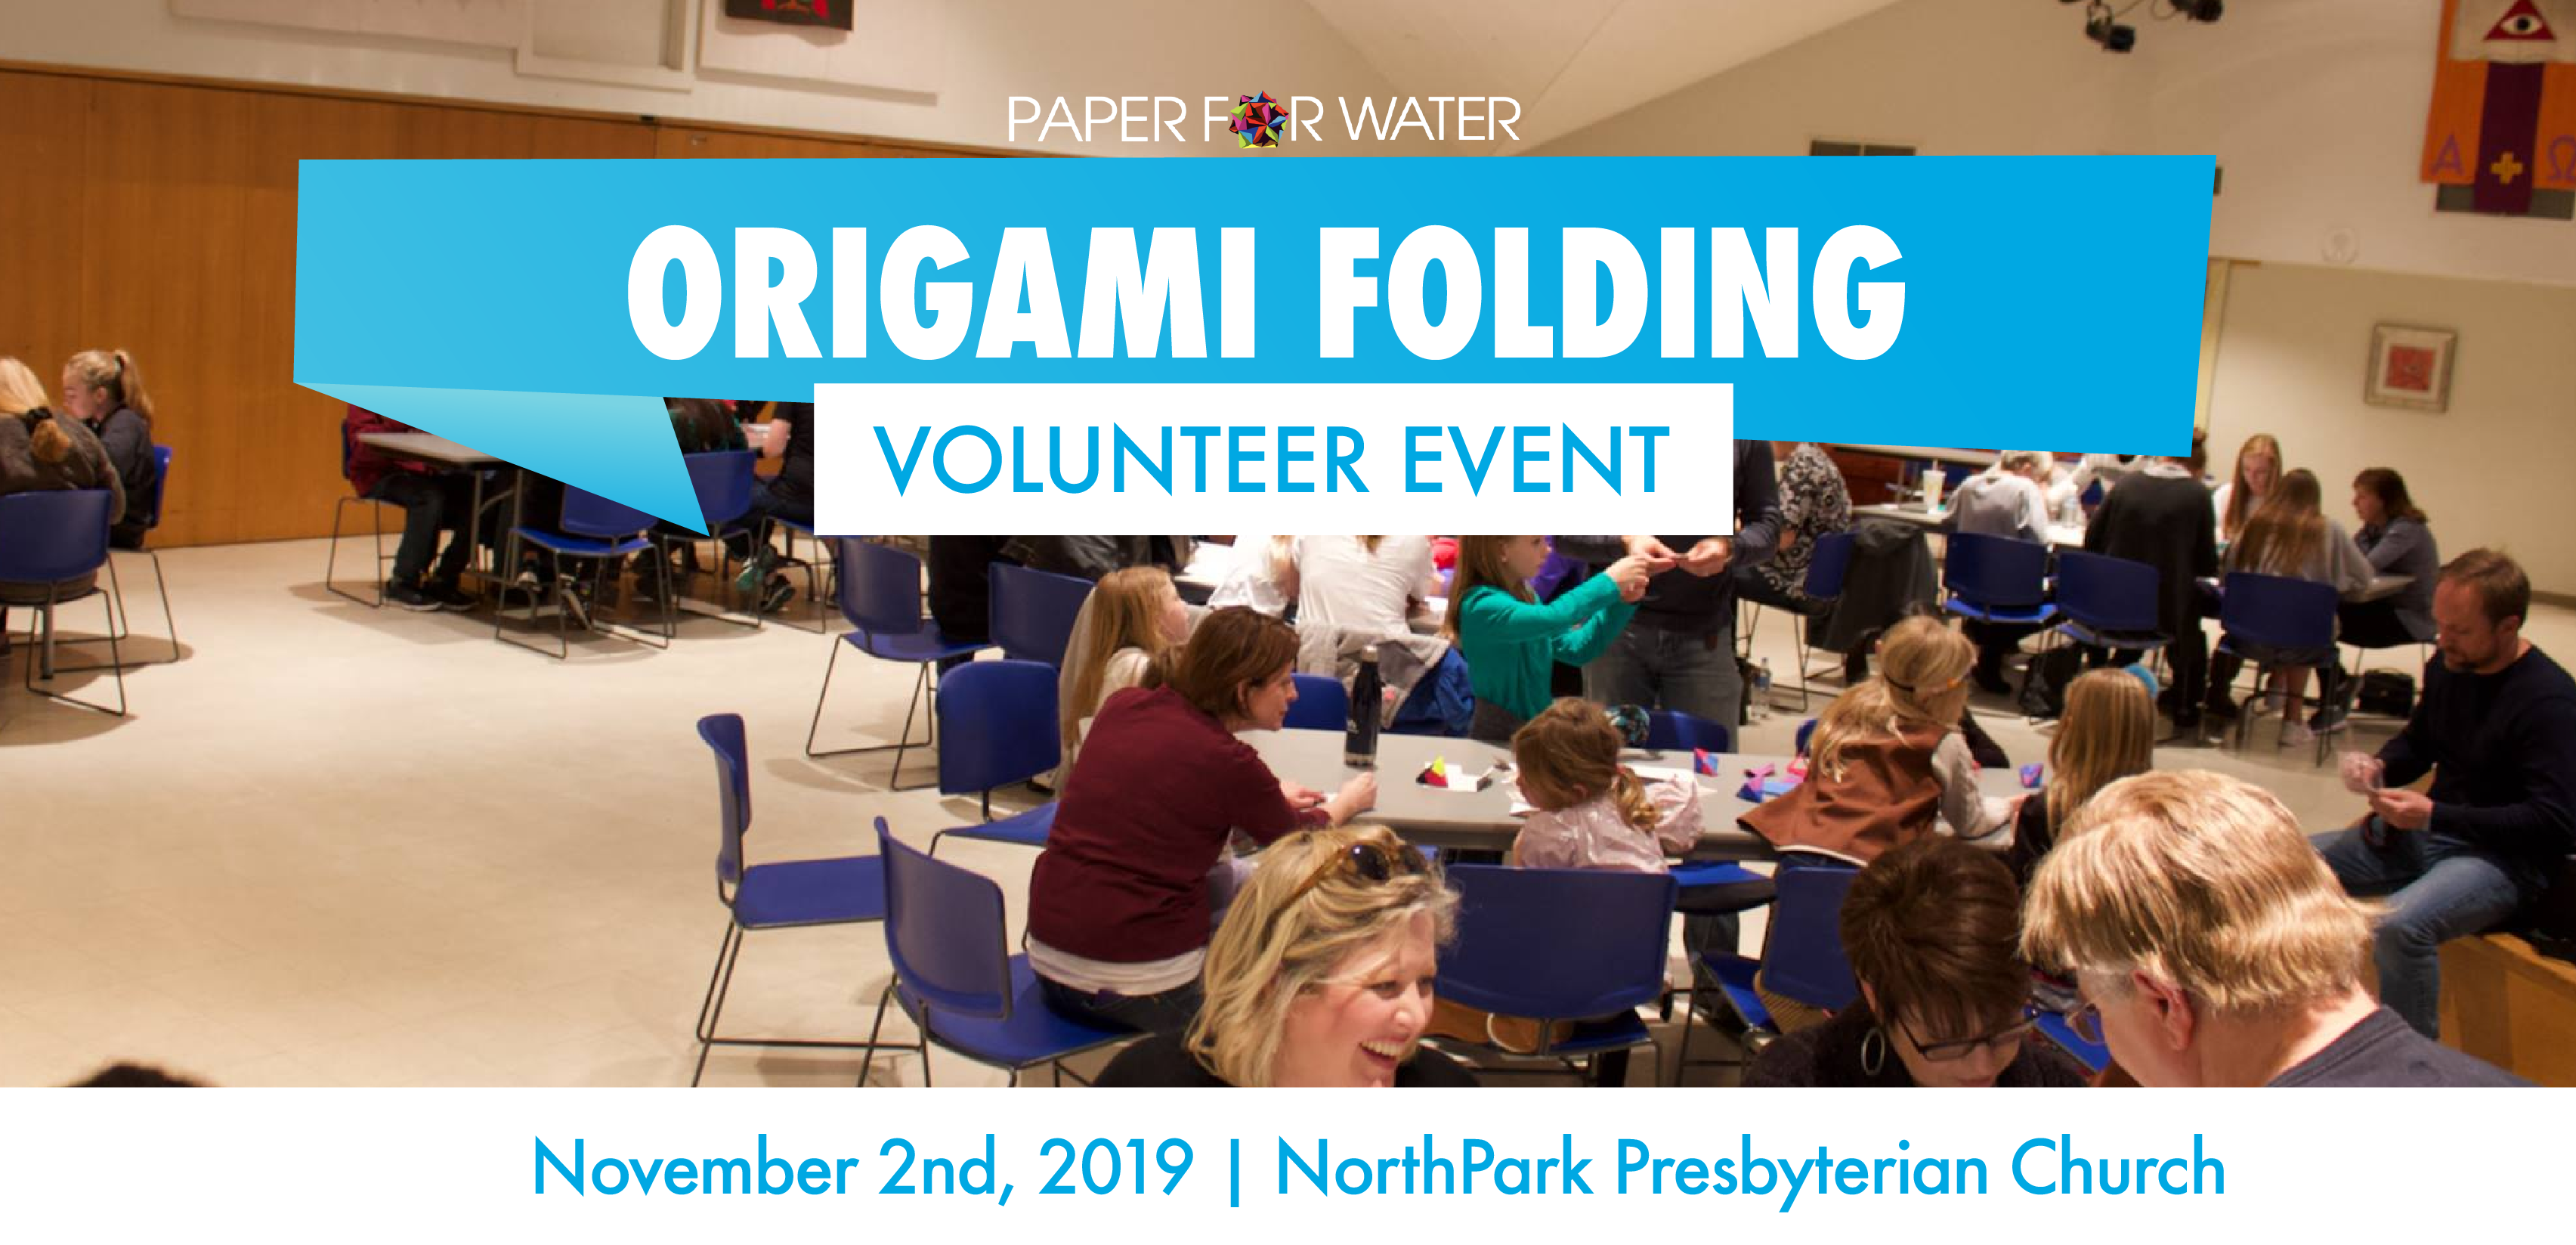 Origami folding volunteer event 12